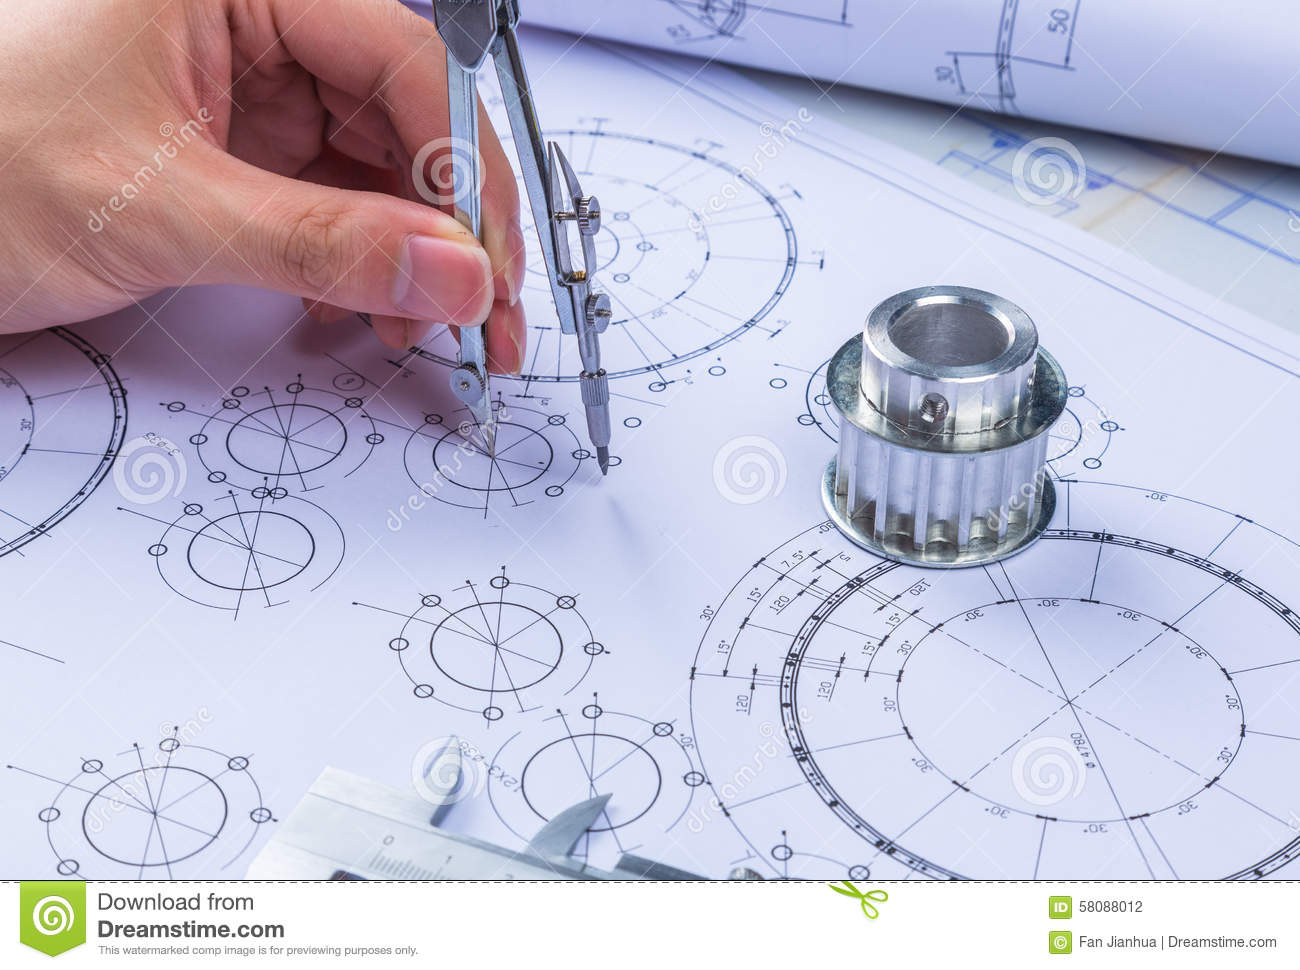 Mechanical Design Engineer In Drawing Stock Photo - Image of circle, blue: 58088012